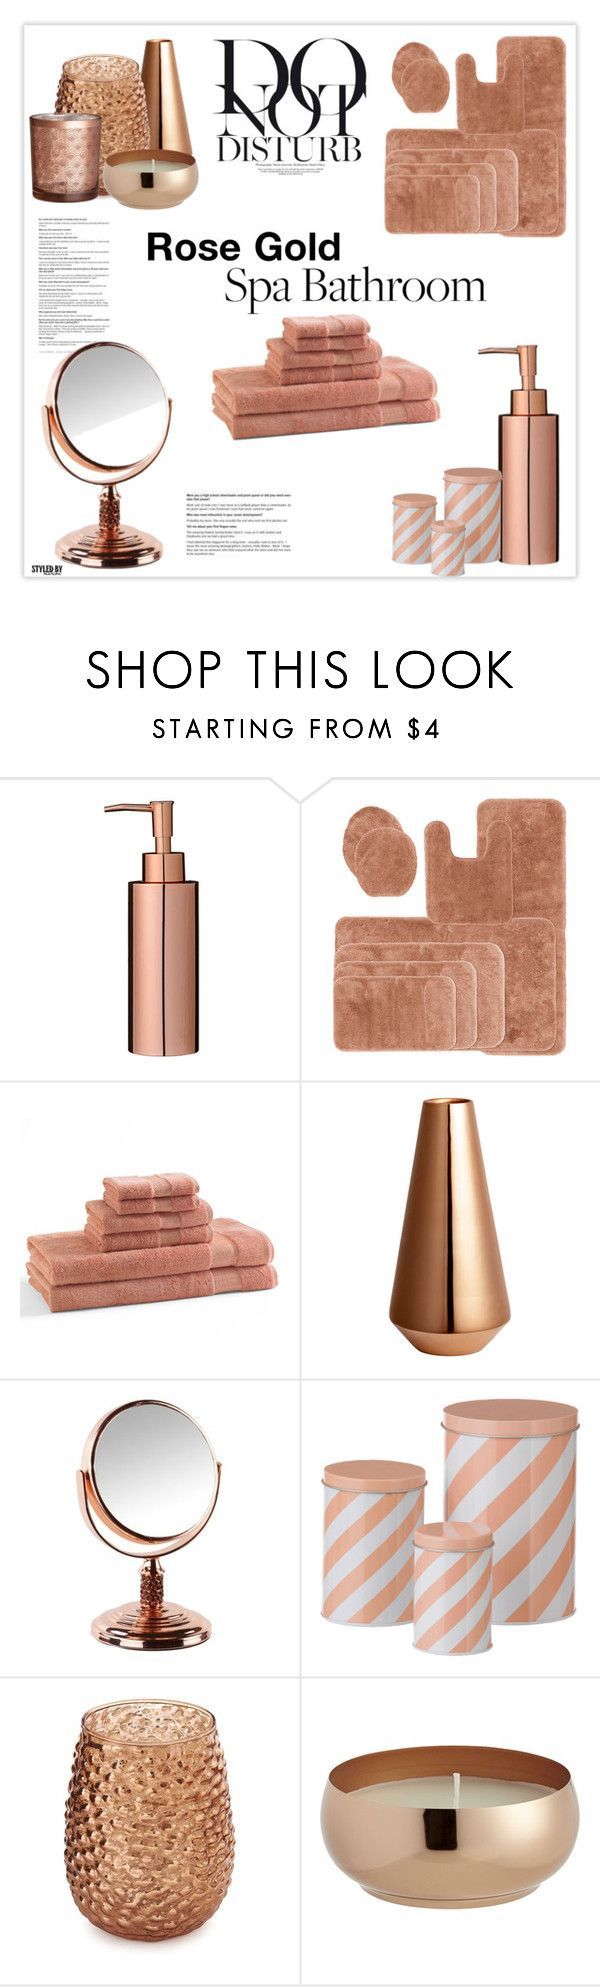 awesome Rose Gold Bathroom Decor by http://www.best-100-home-decor-pictures.xyz/home-decor-accessories/rose-gold-bathroom-decor/